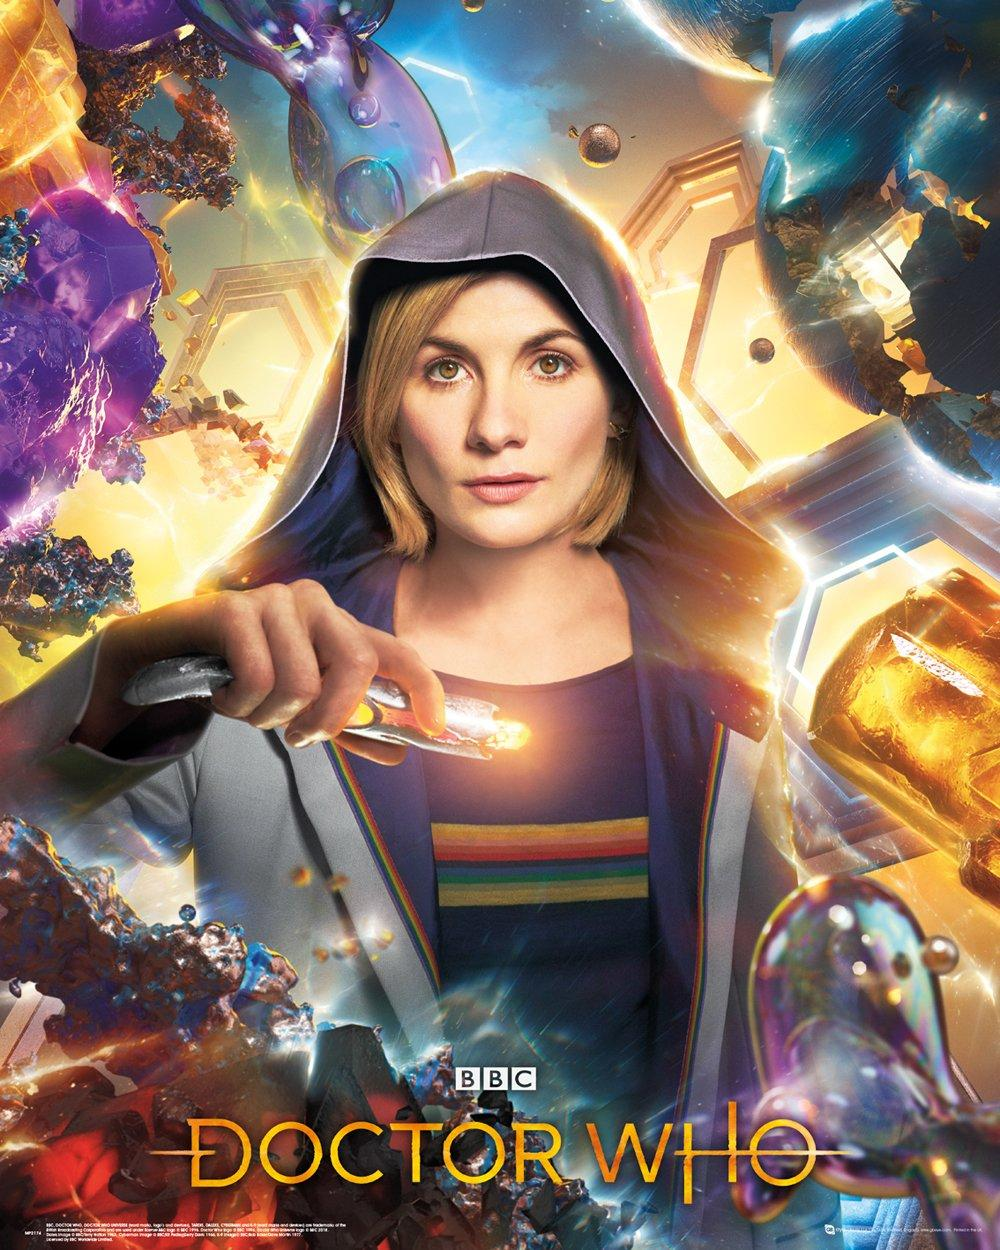 DOCTOR WHO - Mini Poster 40X50 - Universe Calling